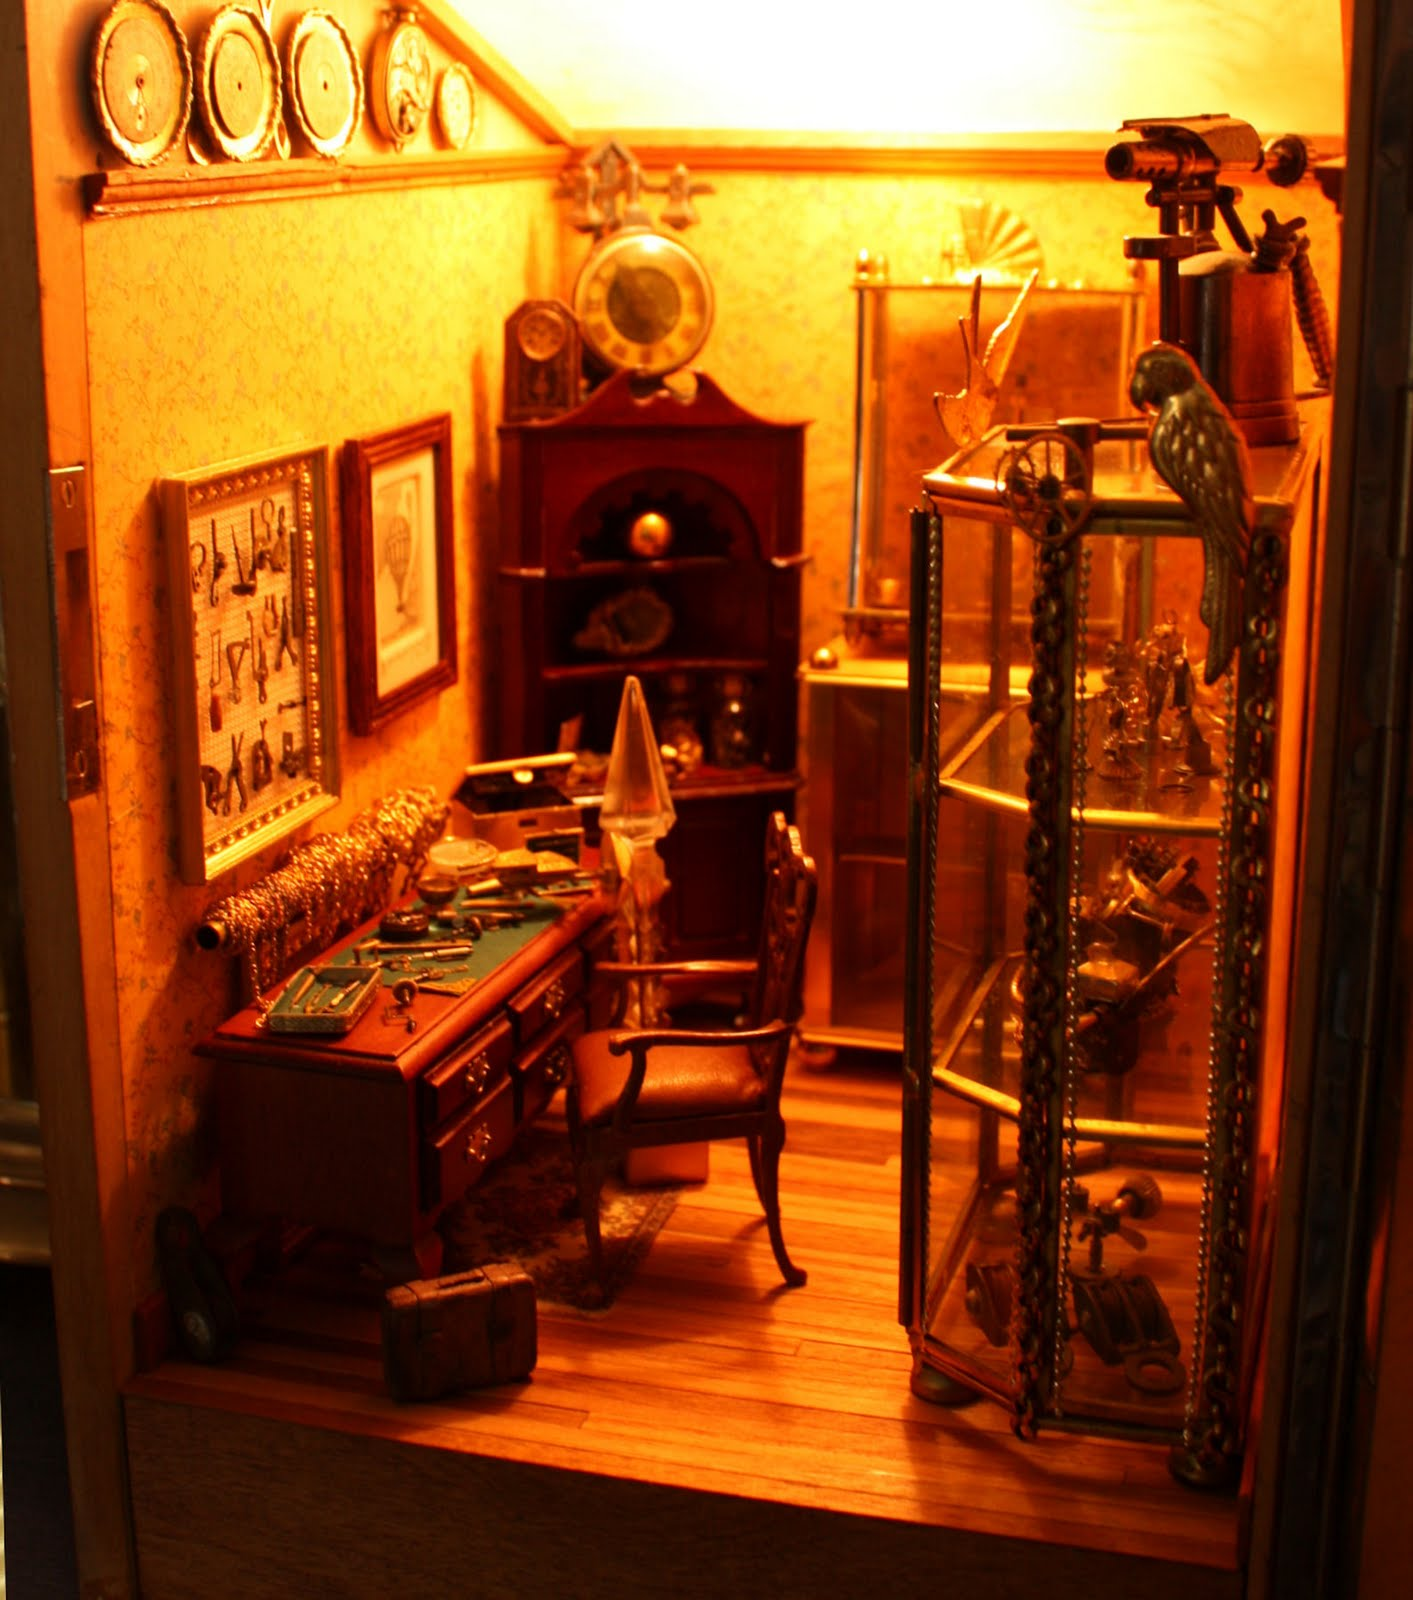 Steampunk Room Ideas Jdayminis 1 12 And 1 48 Scale Minis Freebies And Inspiration